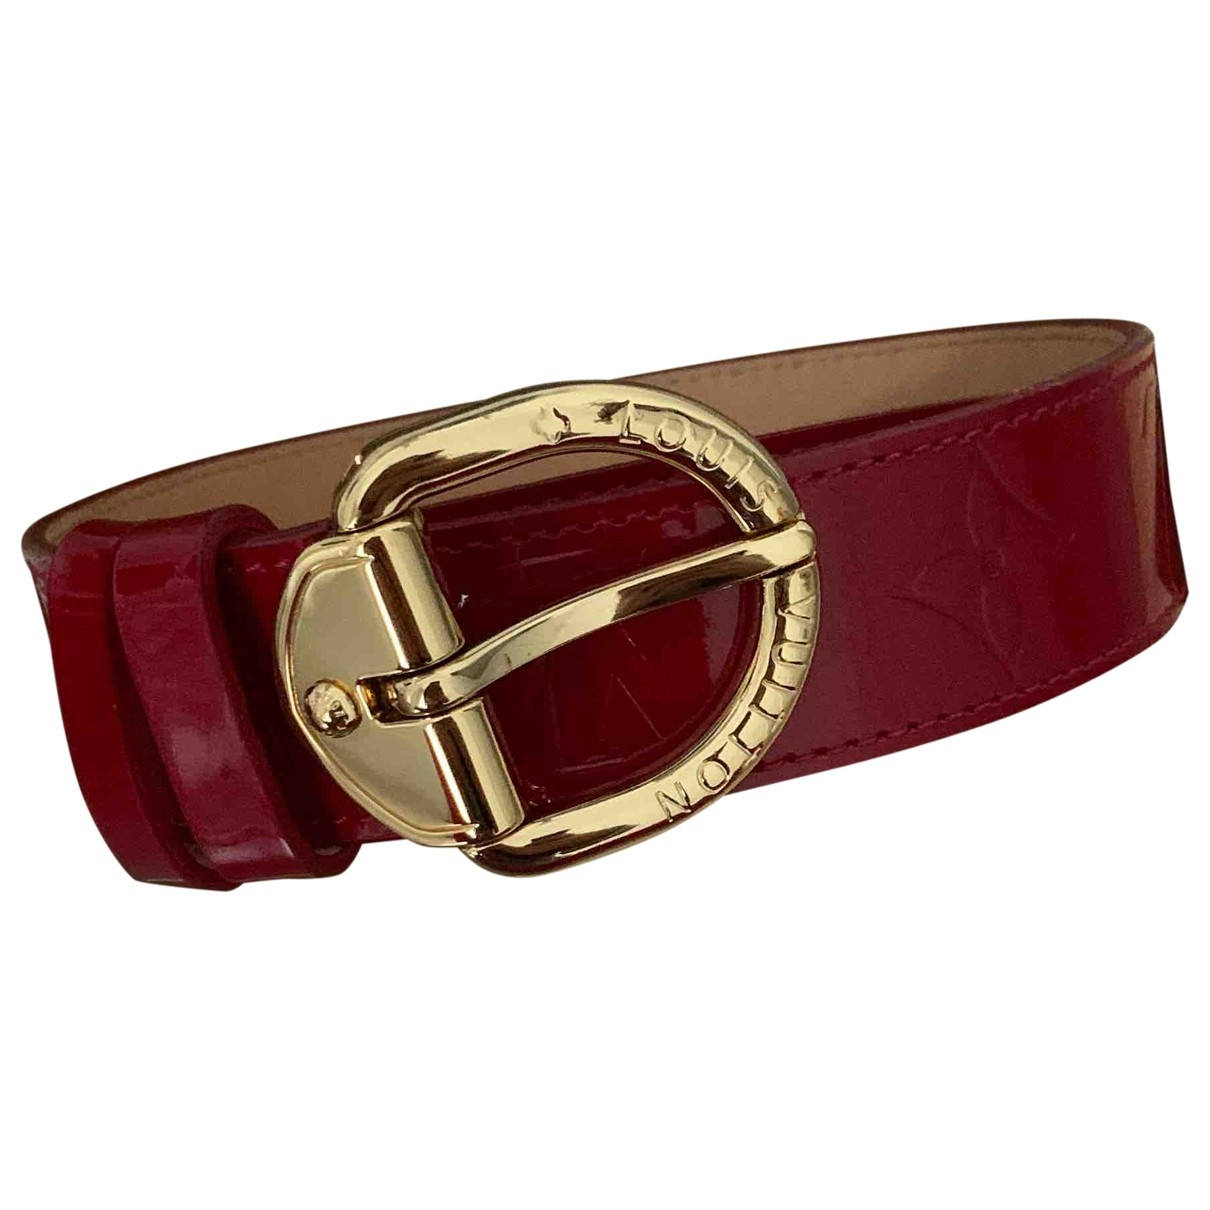 Louis Vuitton \N Red Patent leather belt for Women 90 cm